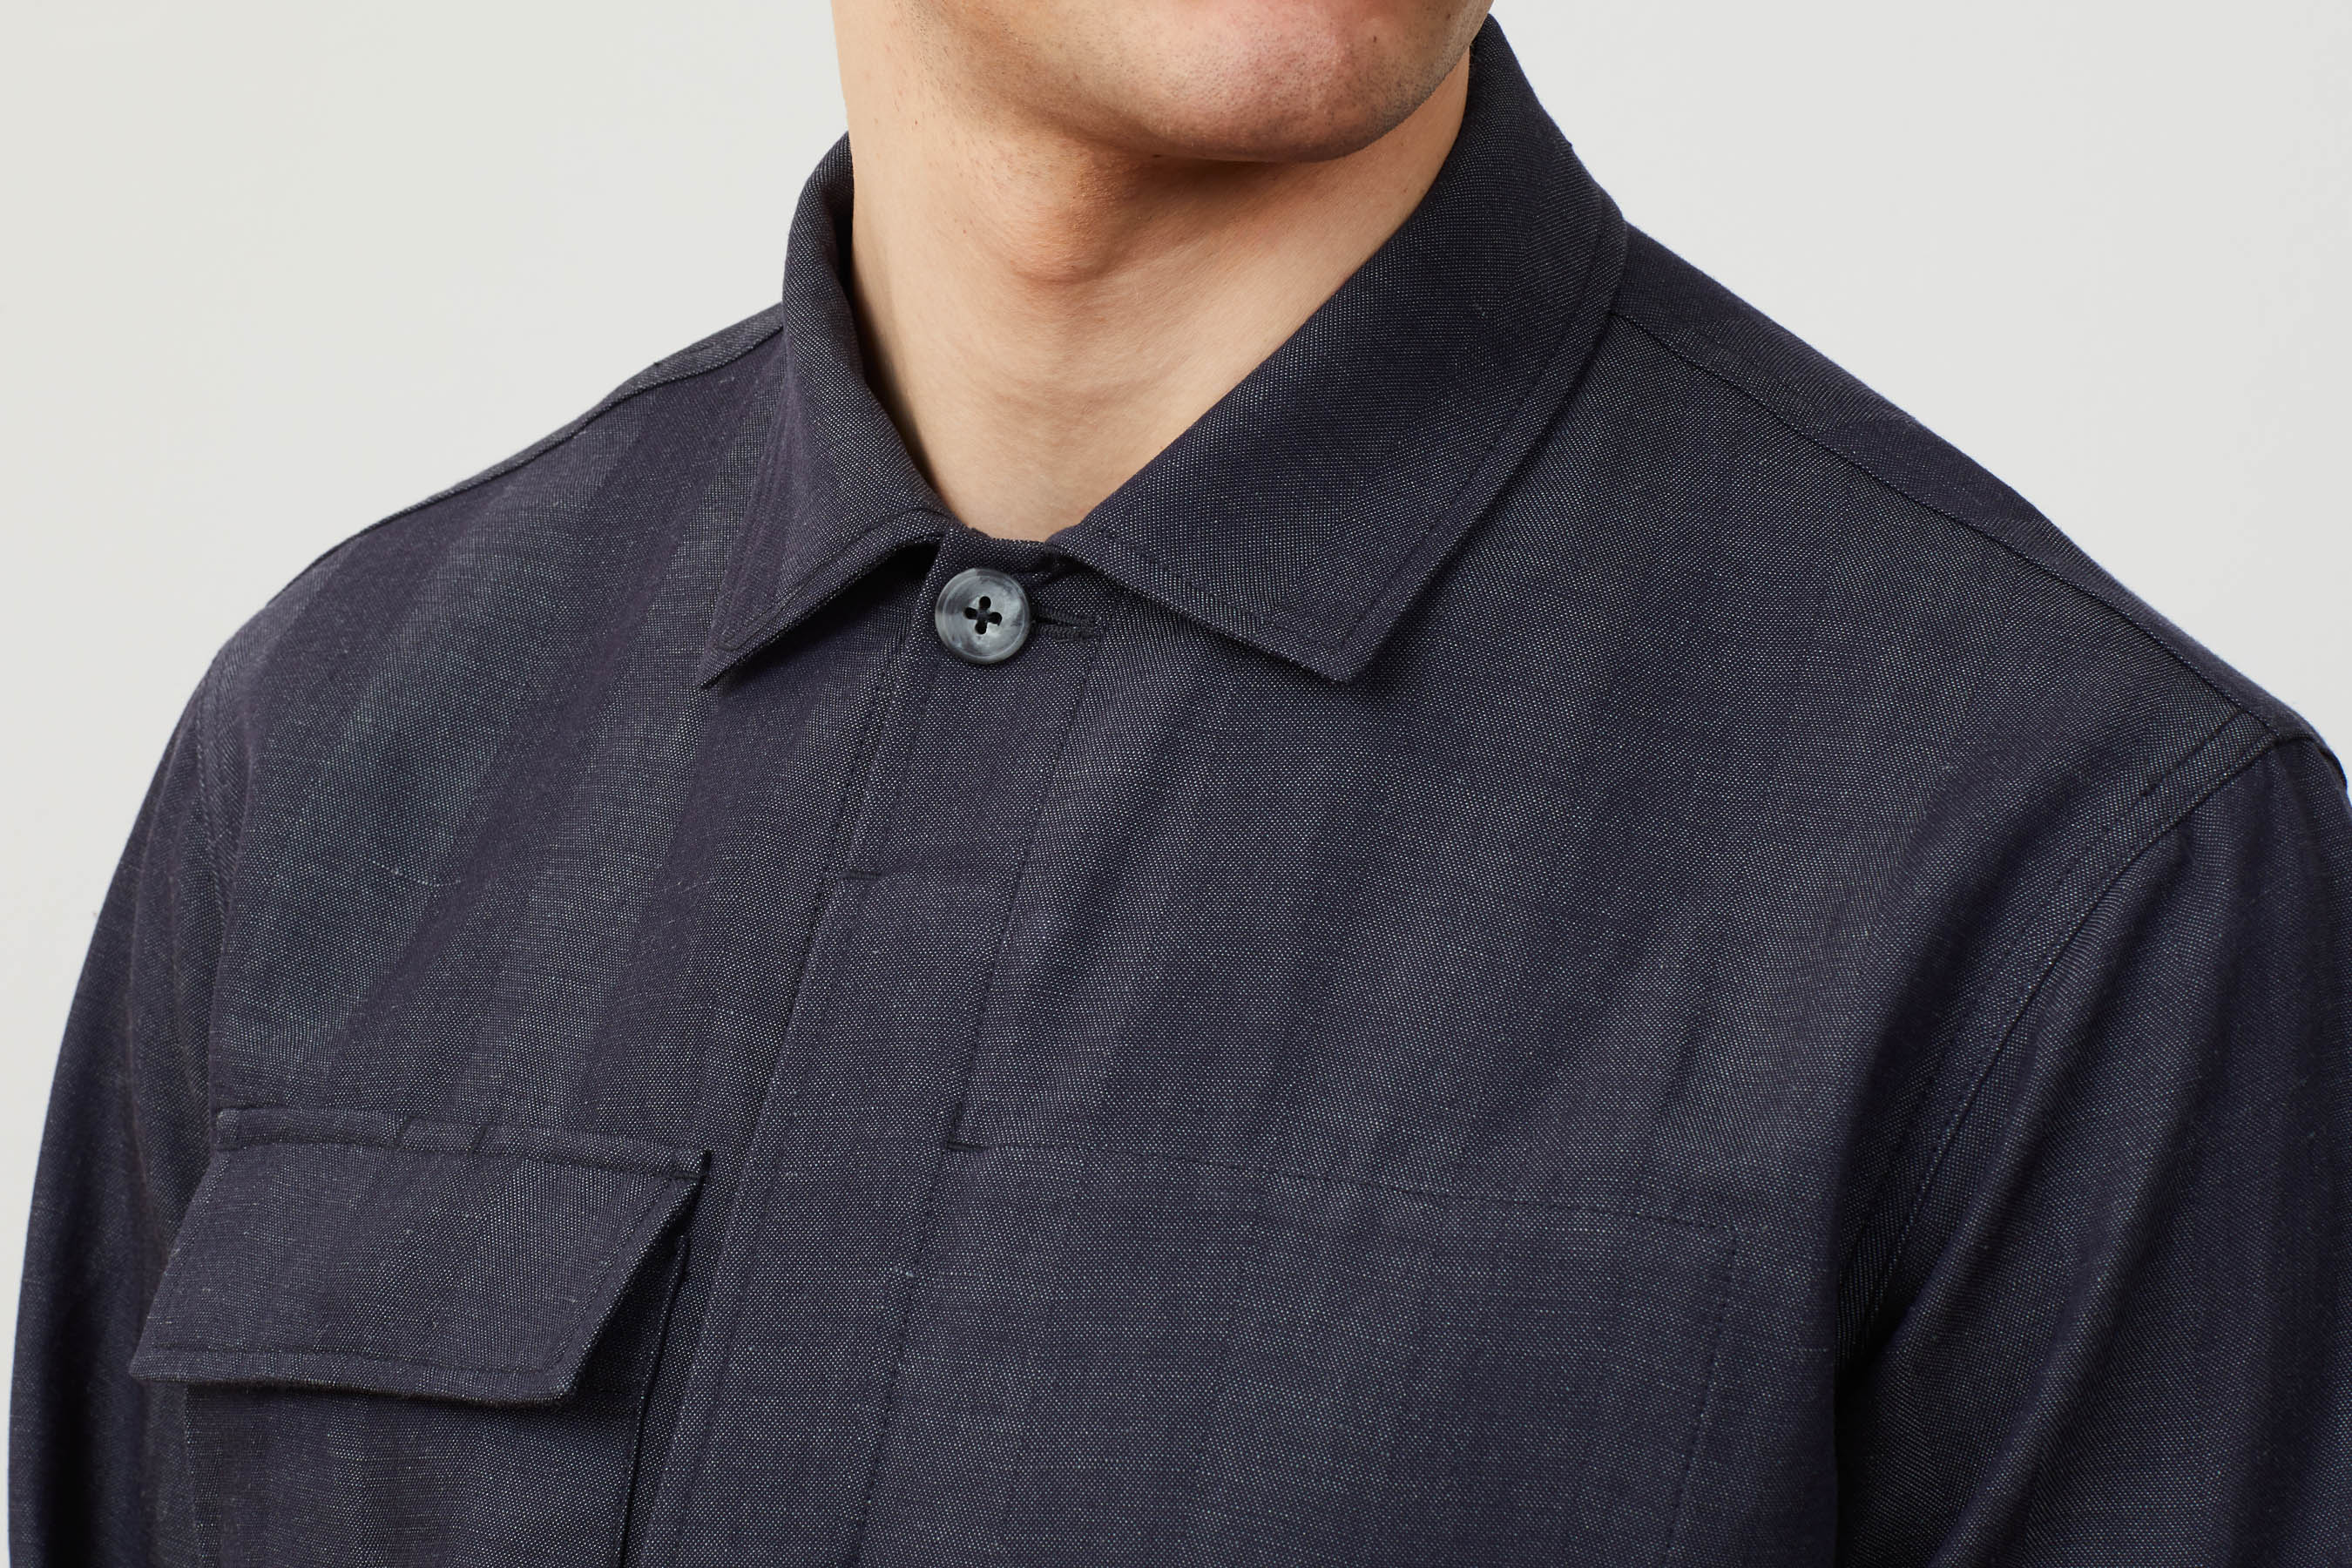 Close up collar detail of the Experiment 259 - Woollinen Hardshirt